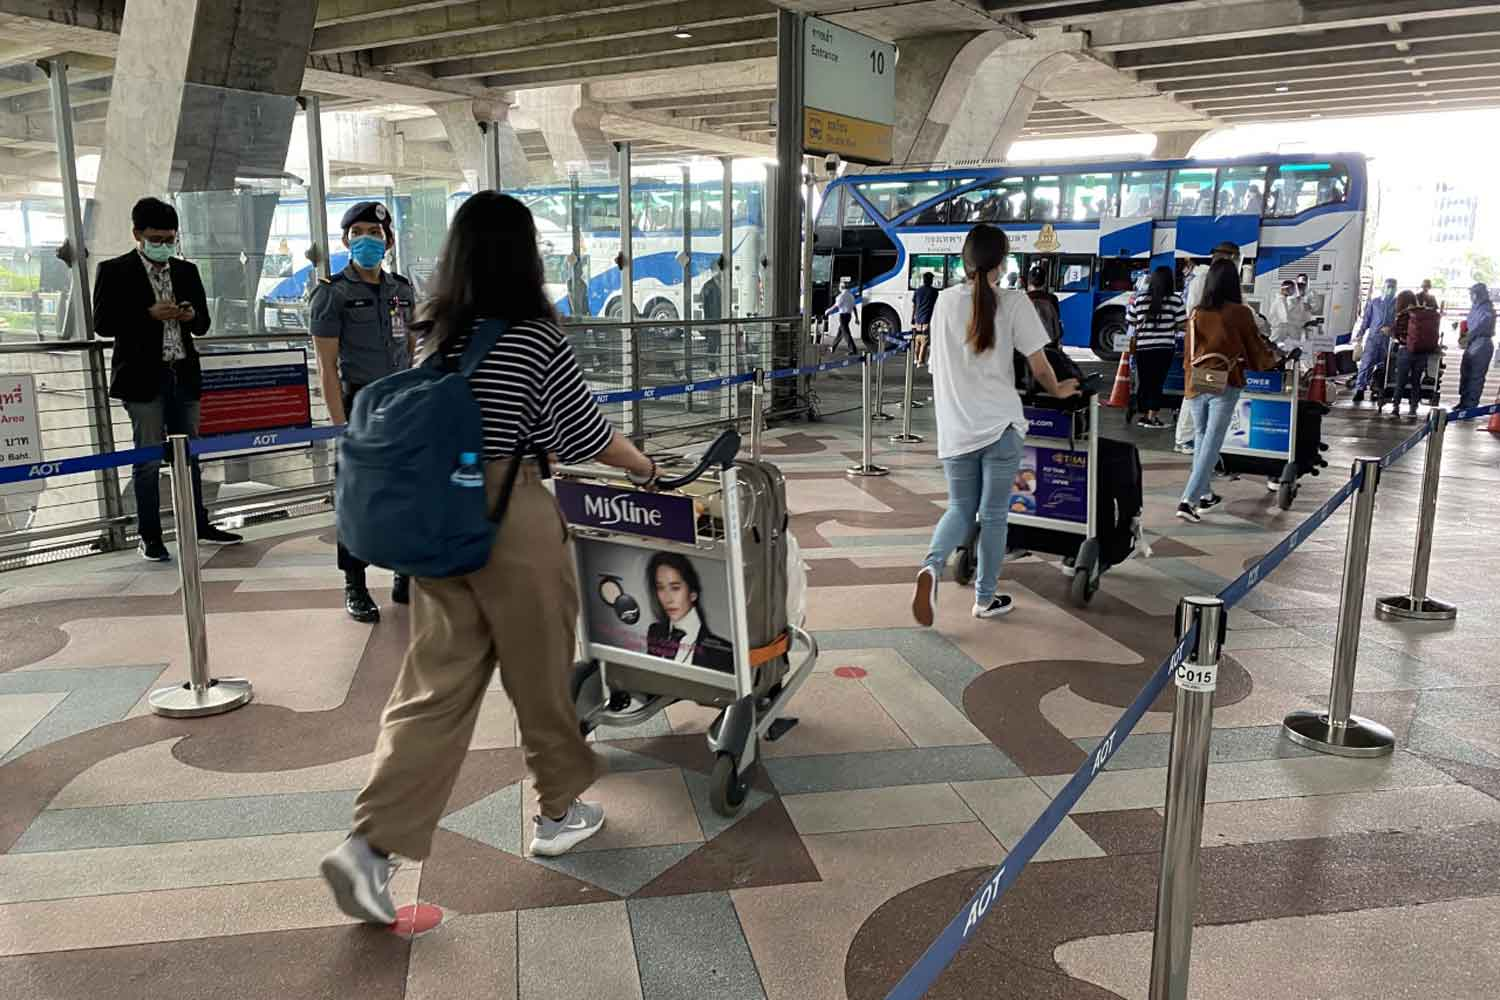 Returnees board buses at Suvarnabhumi airport, heading for 14-day quarantine, after arriving home from Japan on Tuesday. (Photo: Sutthiwit Chayutworakan)